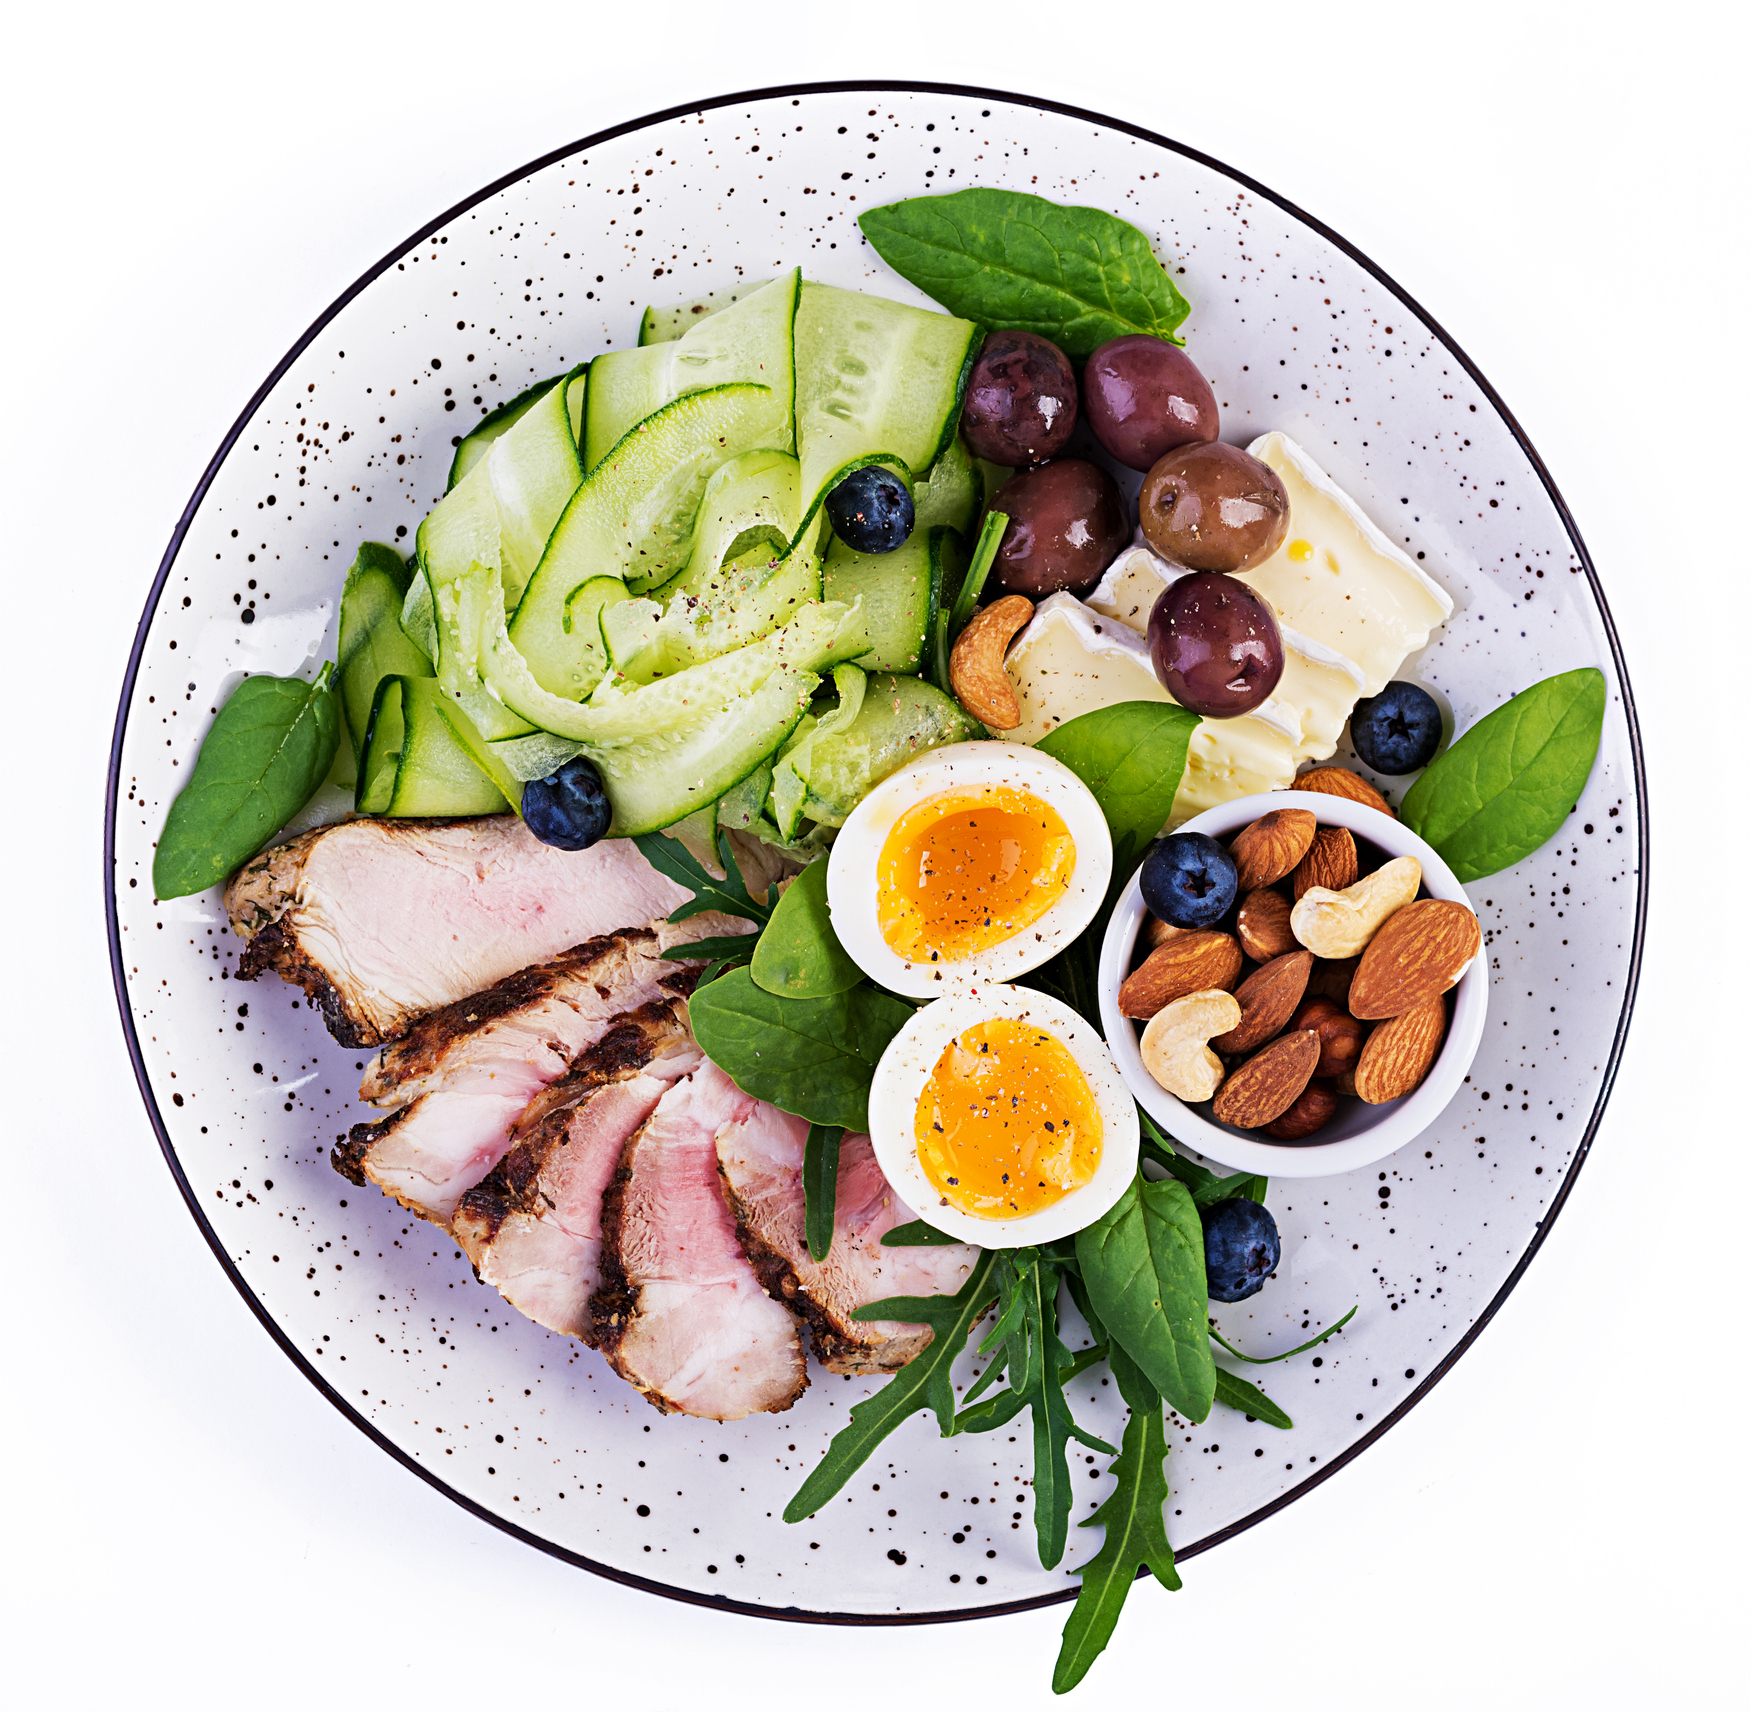 This a large photo of a full meal of vegetables, grapes, nuts, eggs and sliced pork.